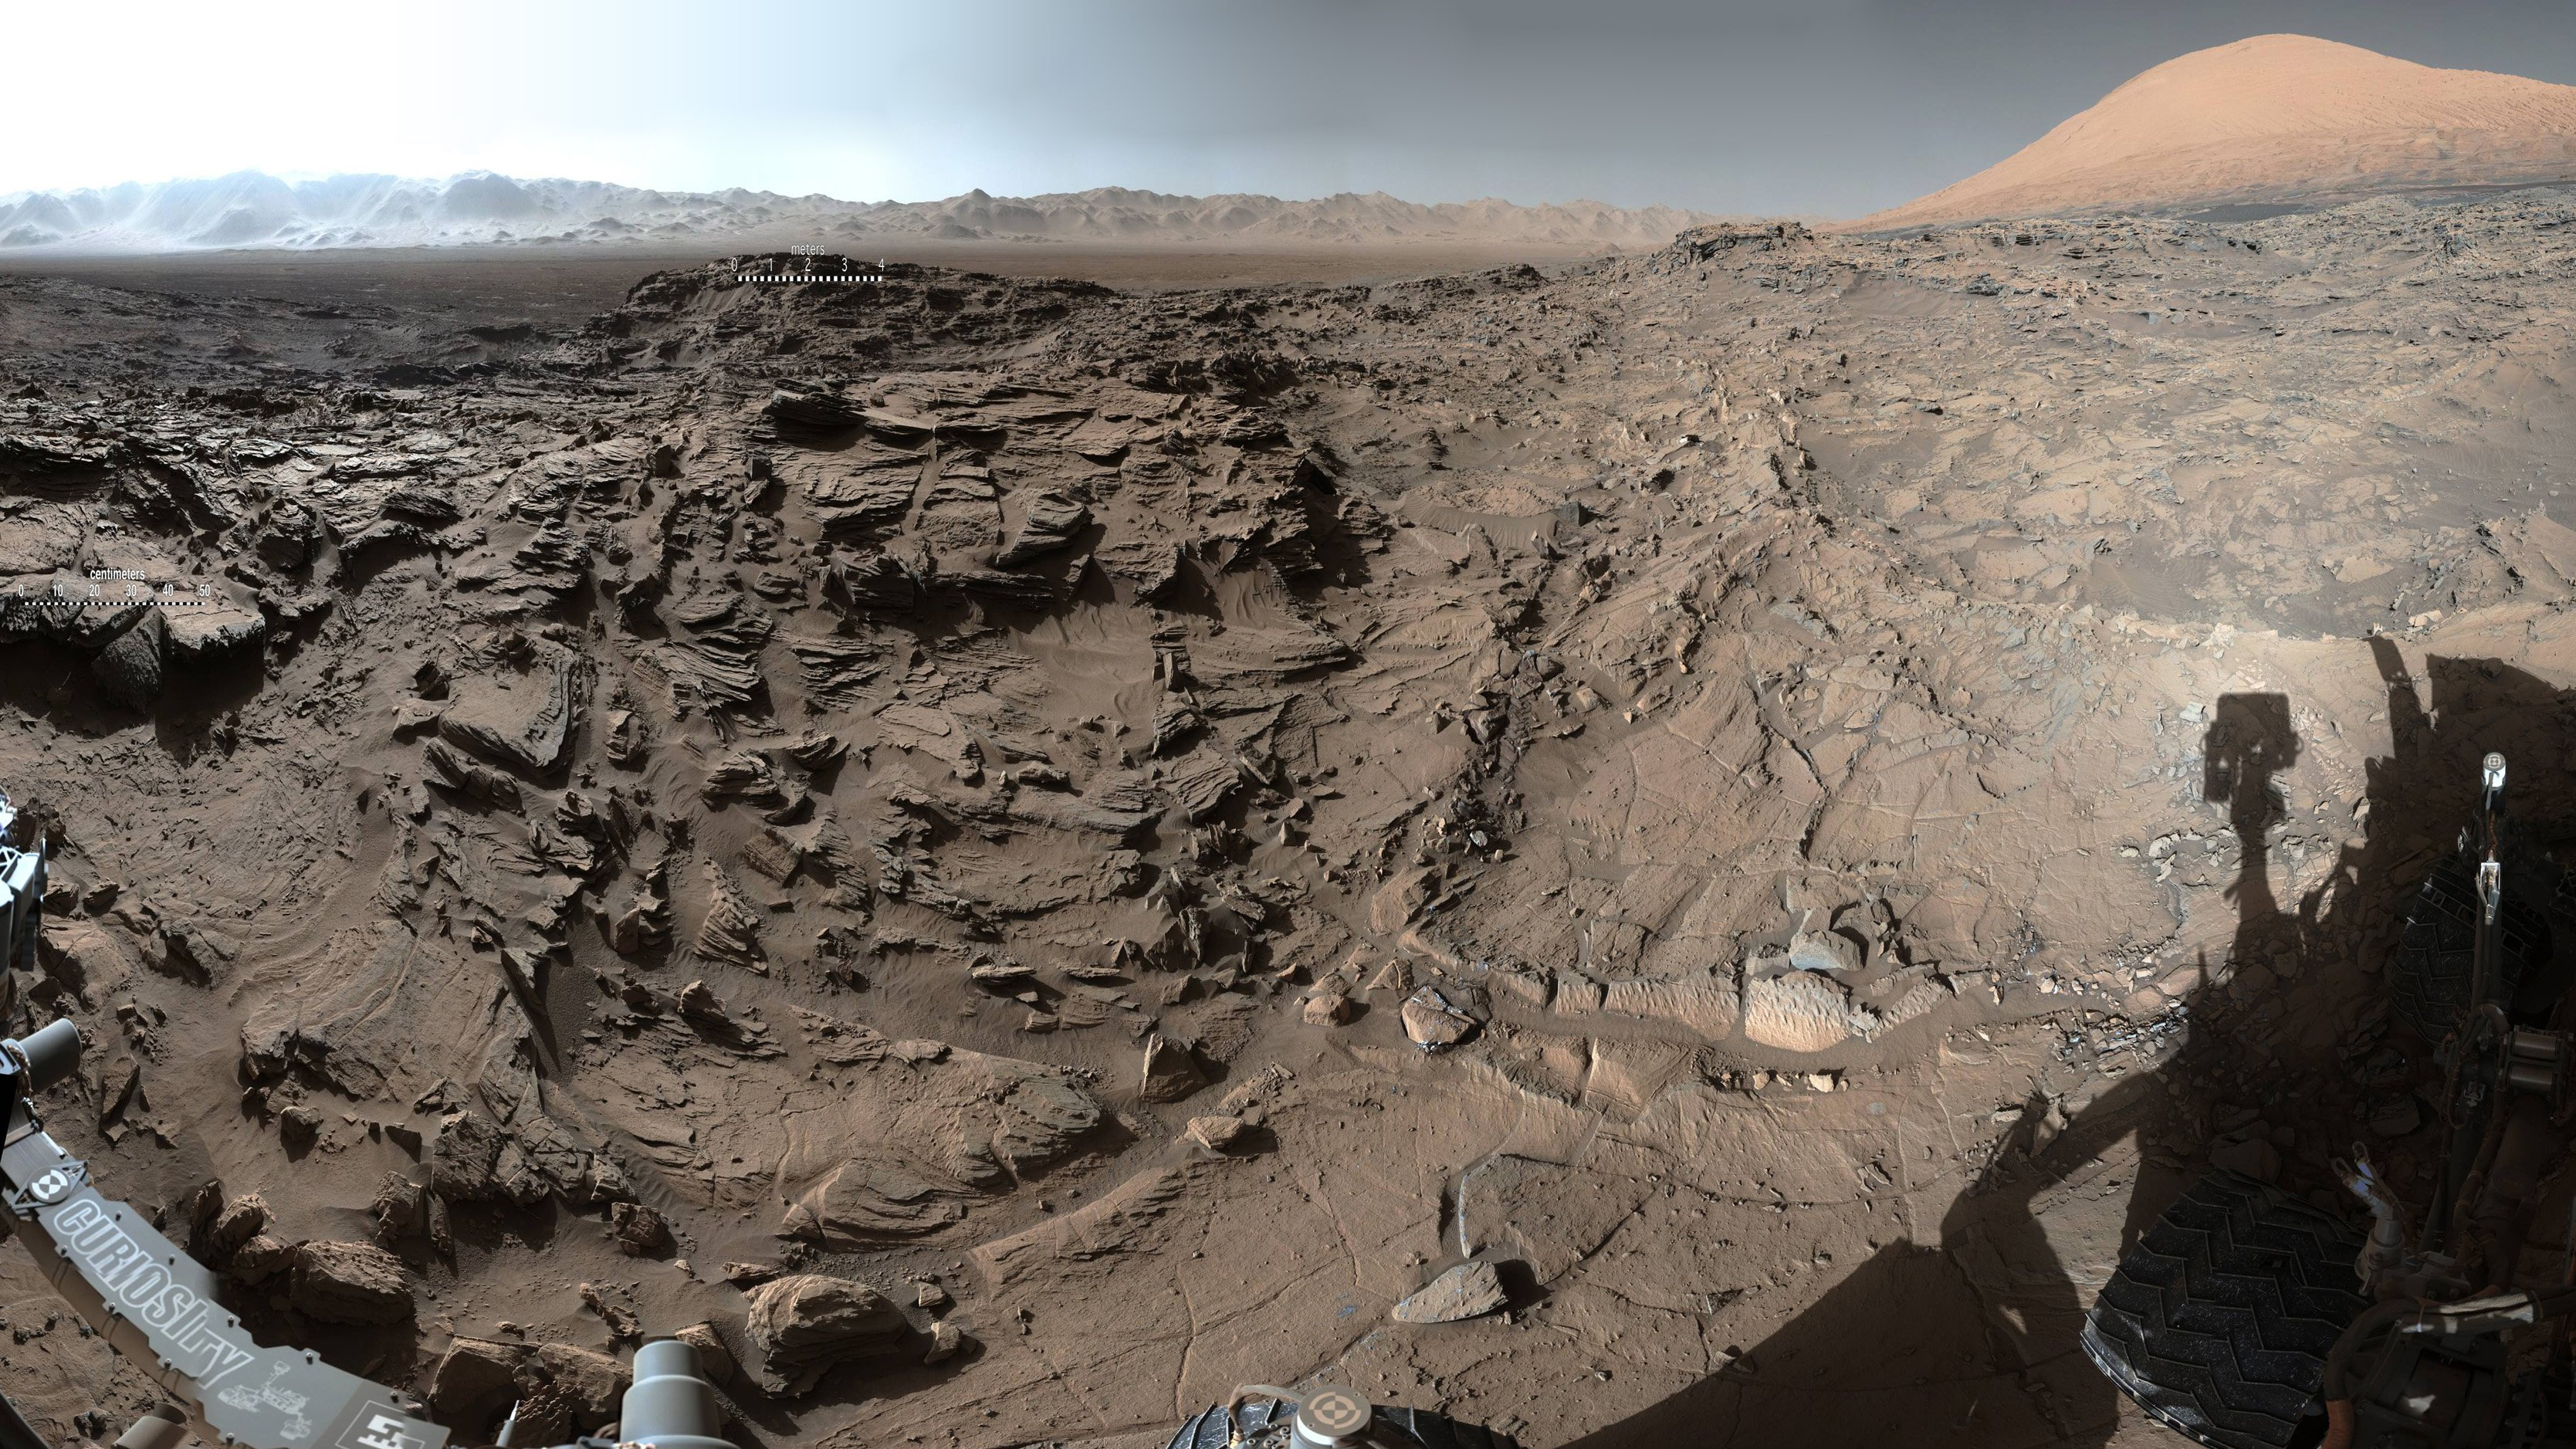 mars wallpapers, photos and desktop backgrounds up to 8K ...